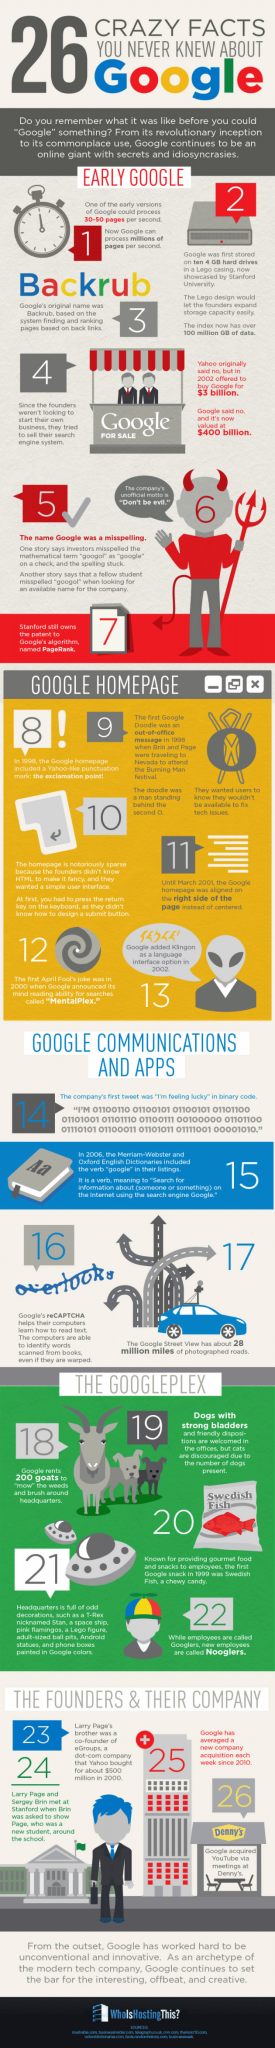 26-Crazy-Facts-About-Google_30016